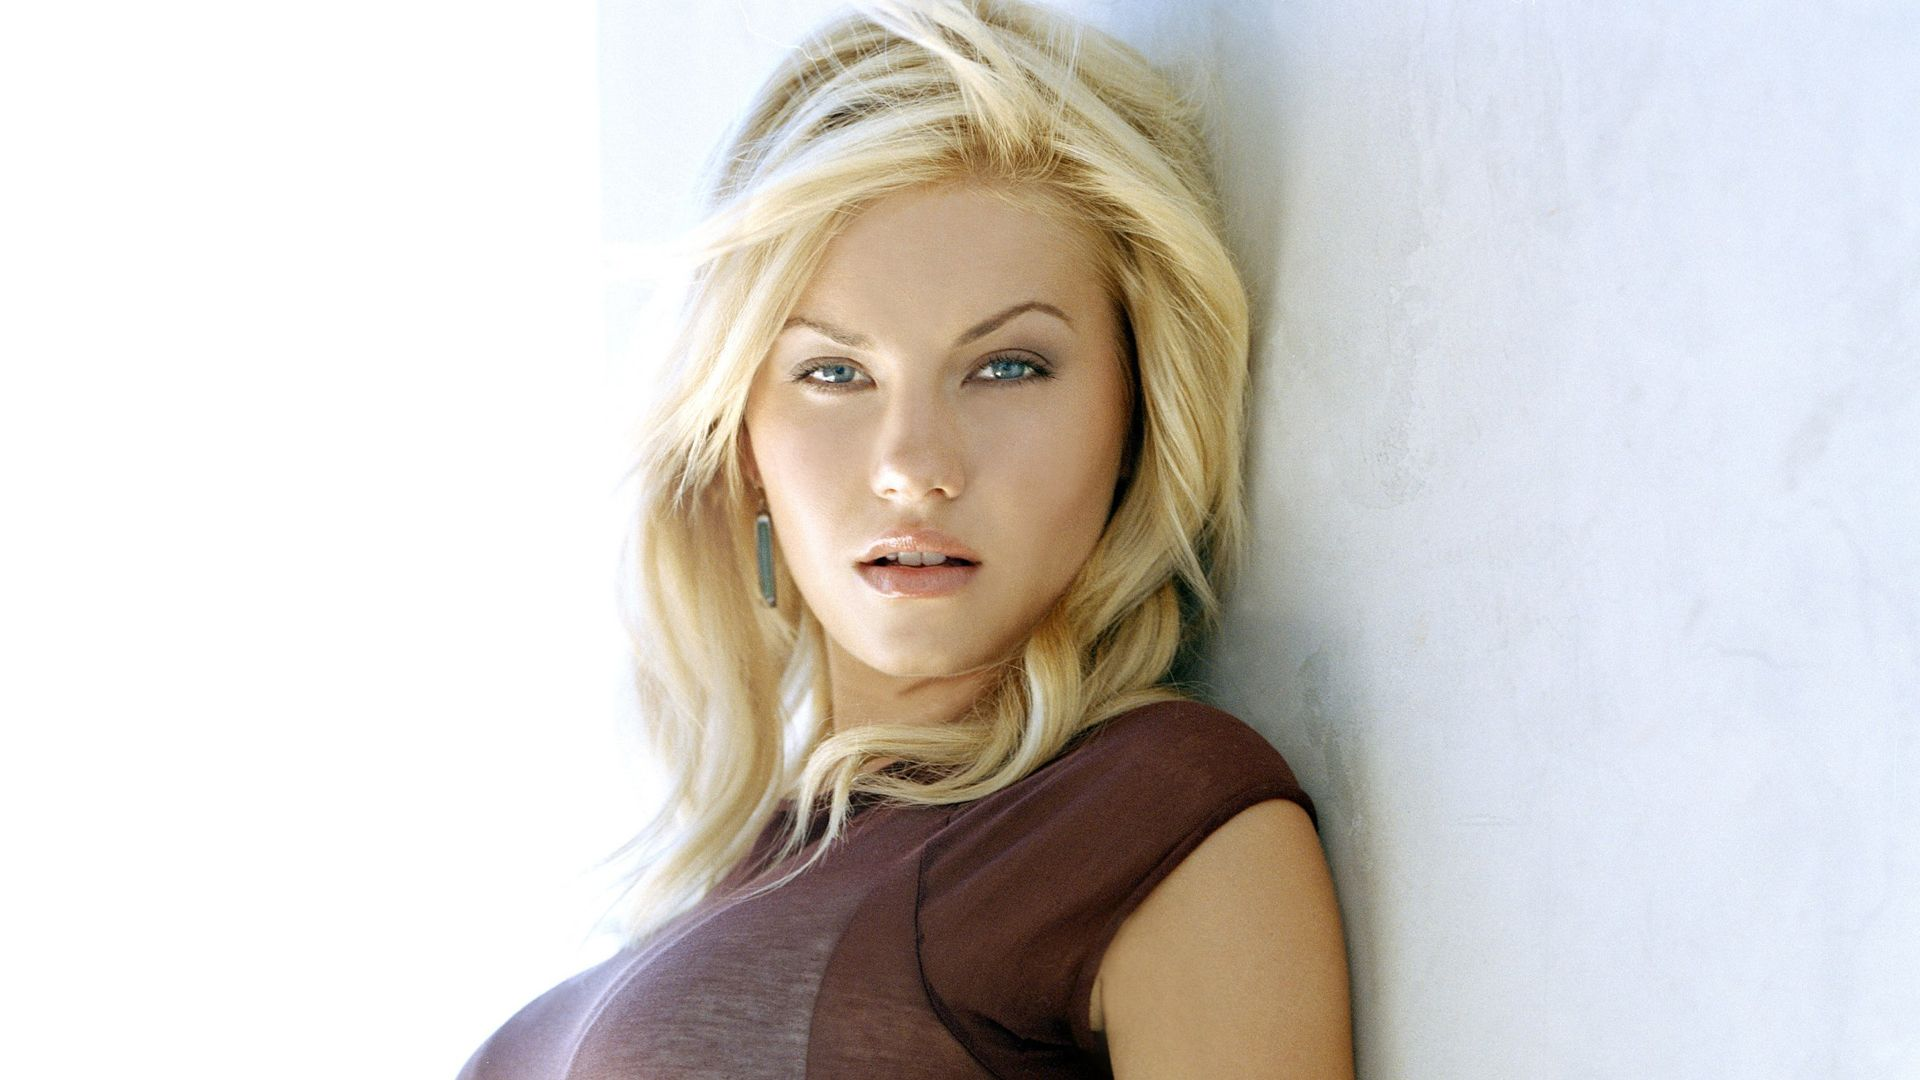 Elisha Cuthbert Hd Wallpapers Backgrounds Wallpaper In 2019